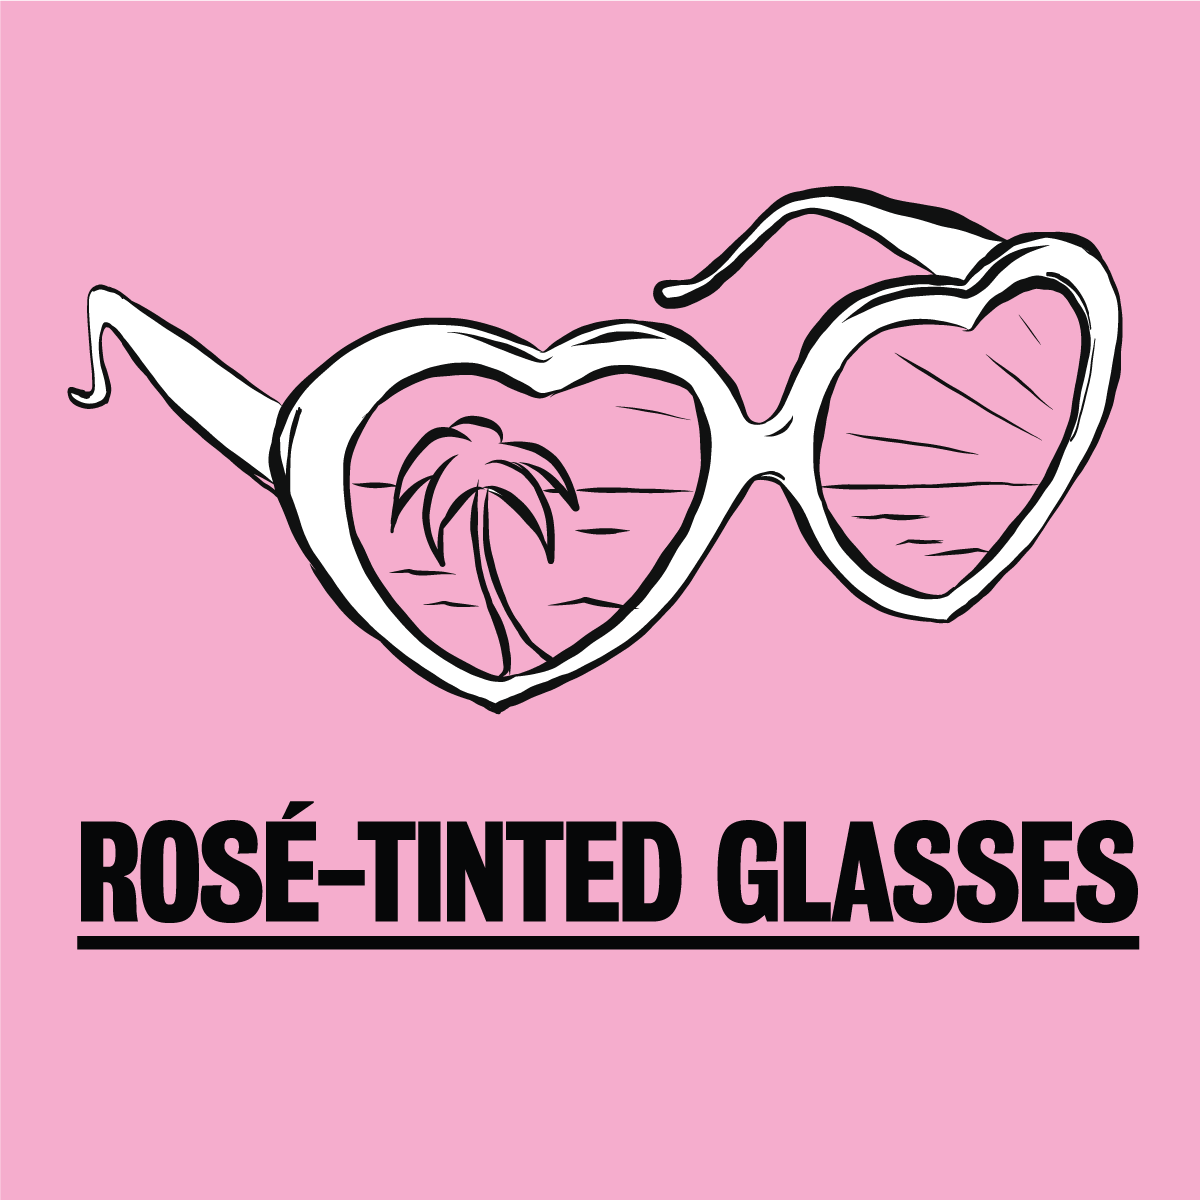 Cannes Rosé Tinted Glasses campaign